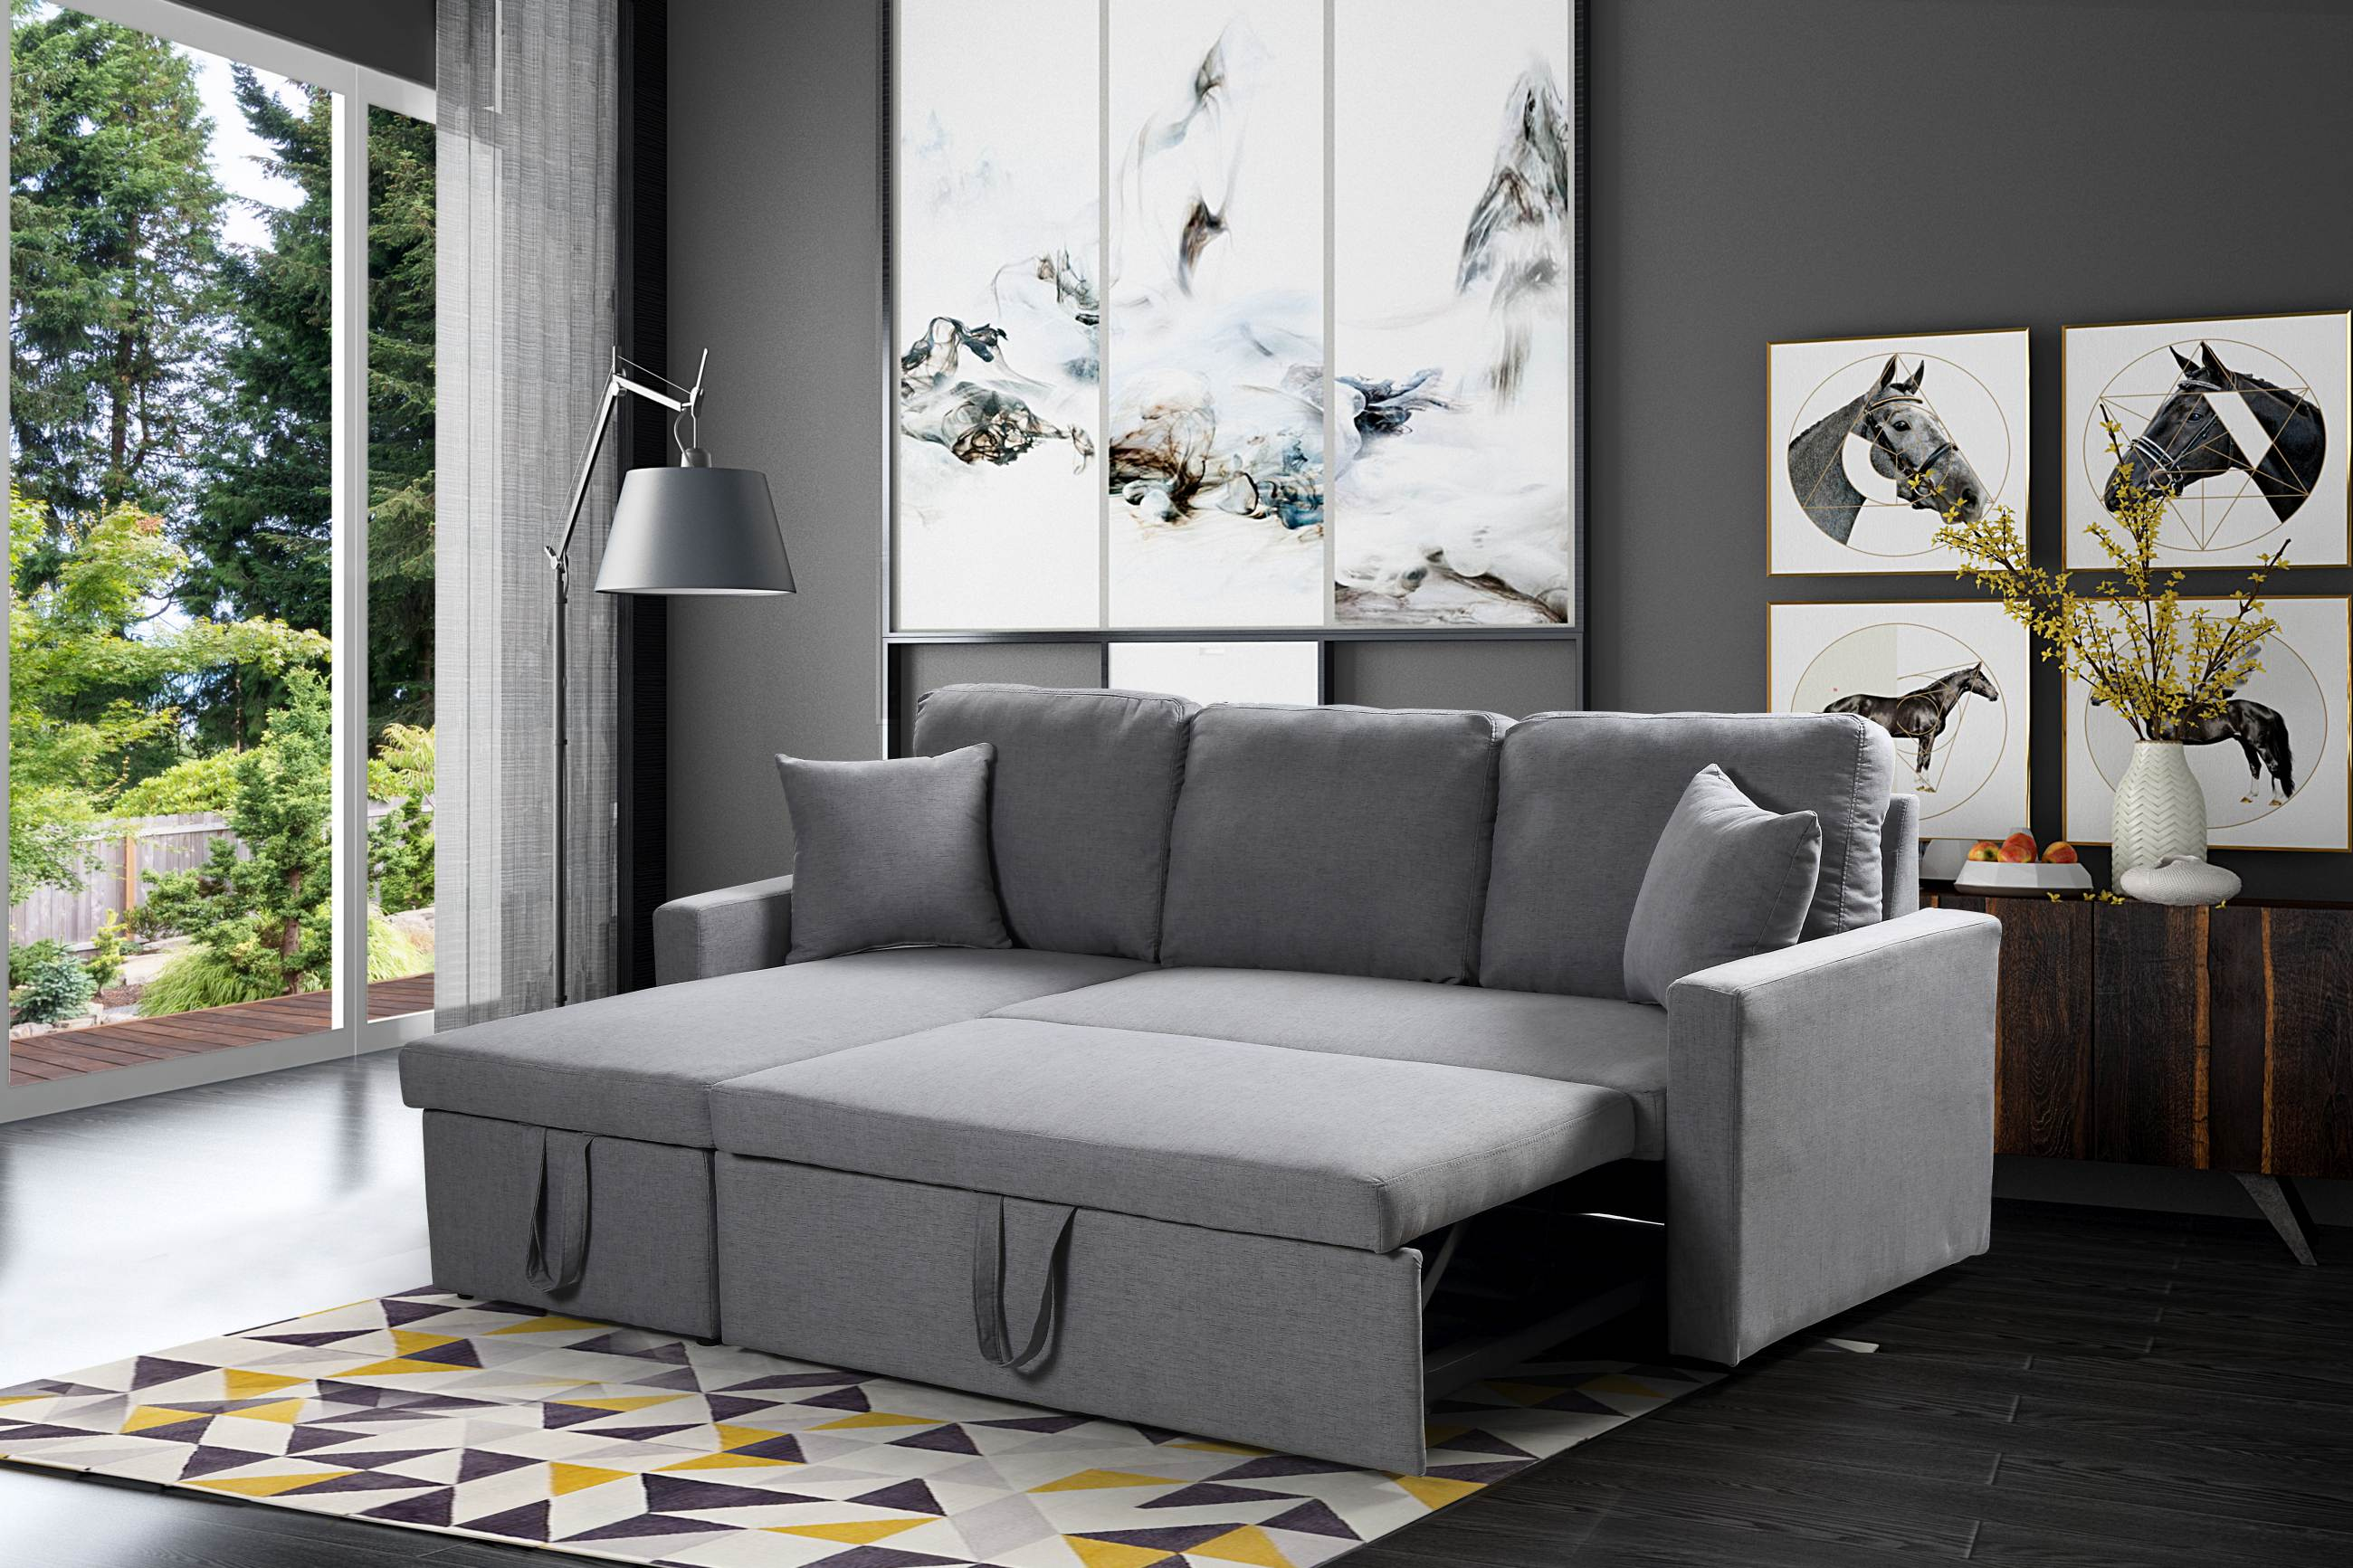 Zara Reversible Sectional Sofa 3 In 1 Bed Storage Grey